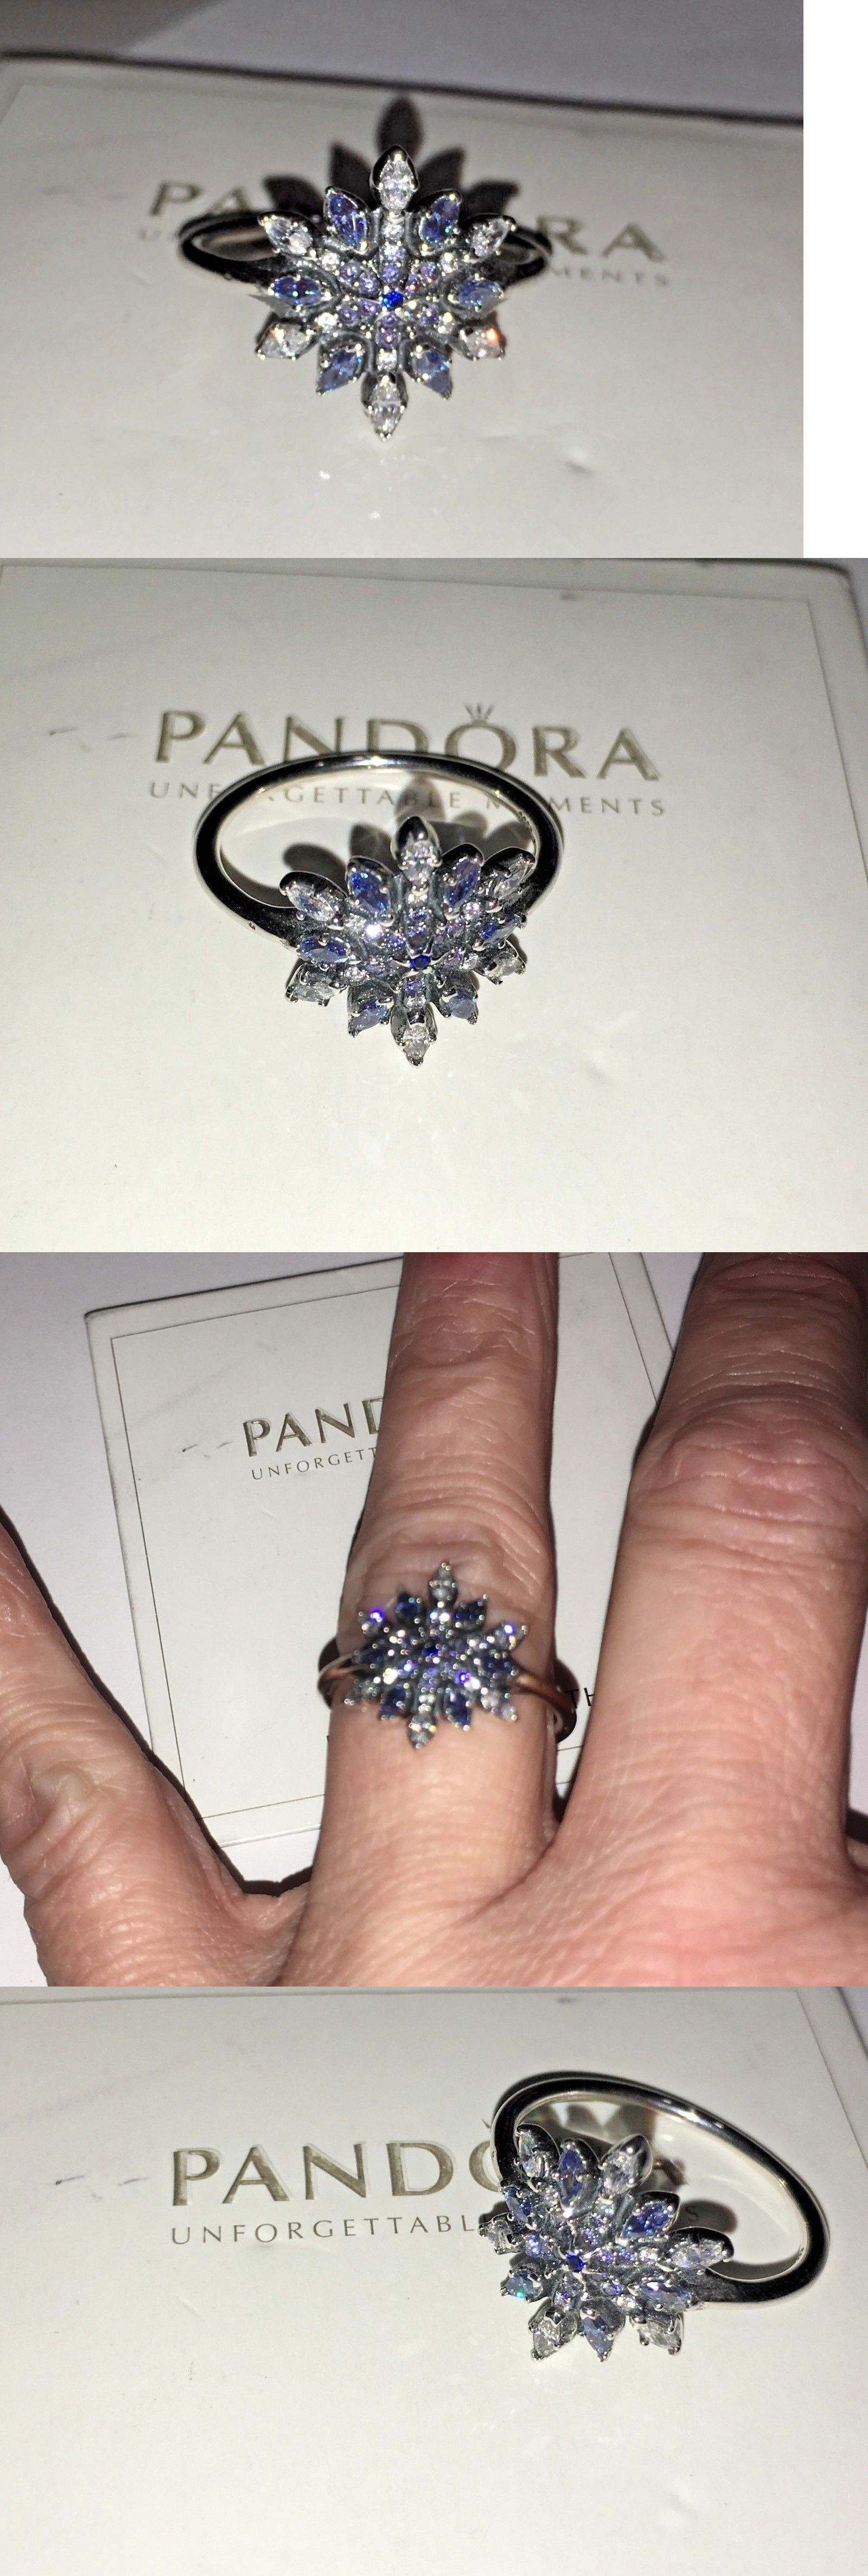 0d16e4efb Other Fine Rings 177030: New Pandora Crystallized Snowflake Ring 190969Nblmx -52 Blue Cz Sterling Size 6 -> BUY IT NOW ONLY: $56.5 on eBay!